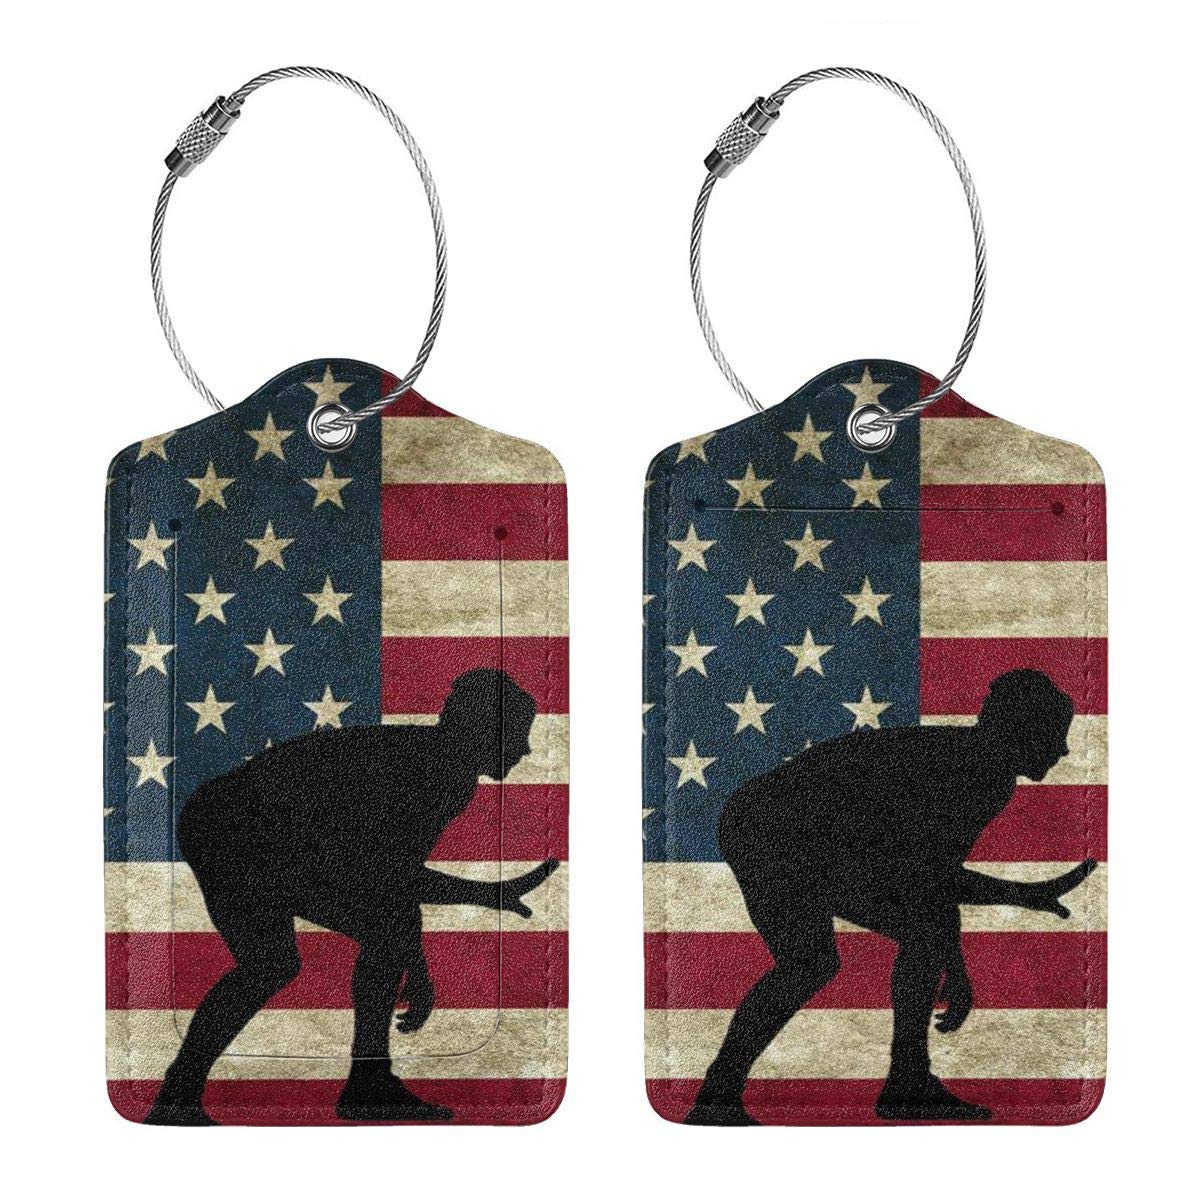 American Flag Wrestling Proud Wrestler Luggage Tag Label Travel Bag Label With Privacy Cover Luggage Tag Leather Personalized Suitcase Tag Travel Accessories